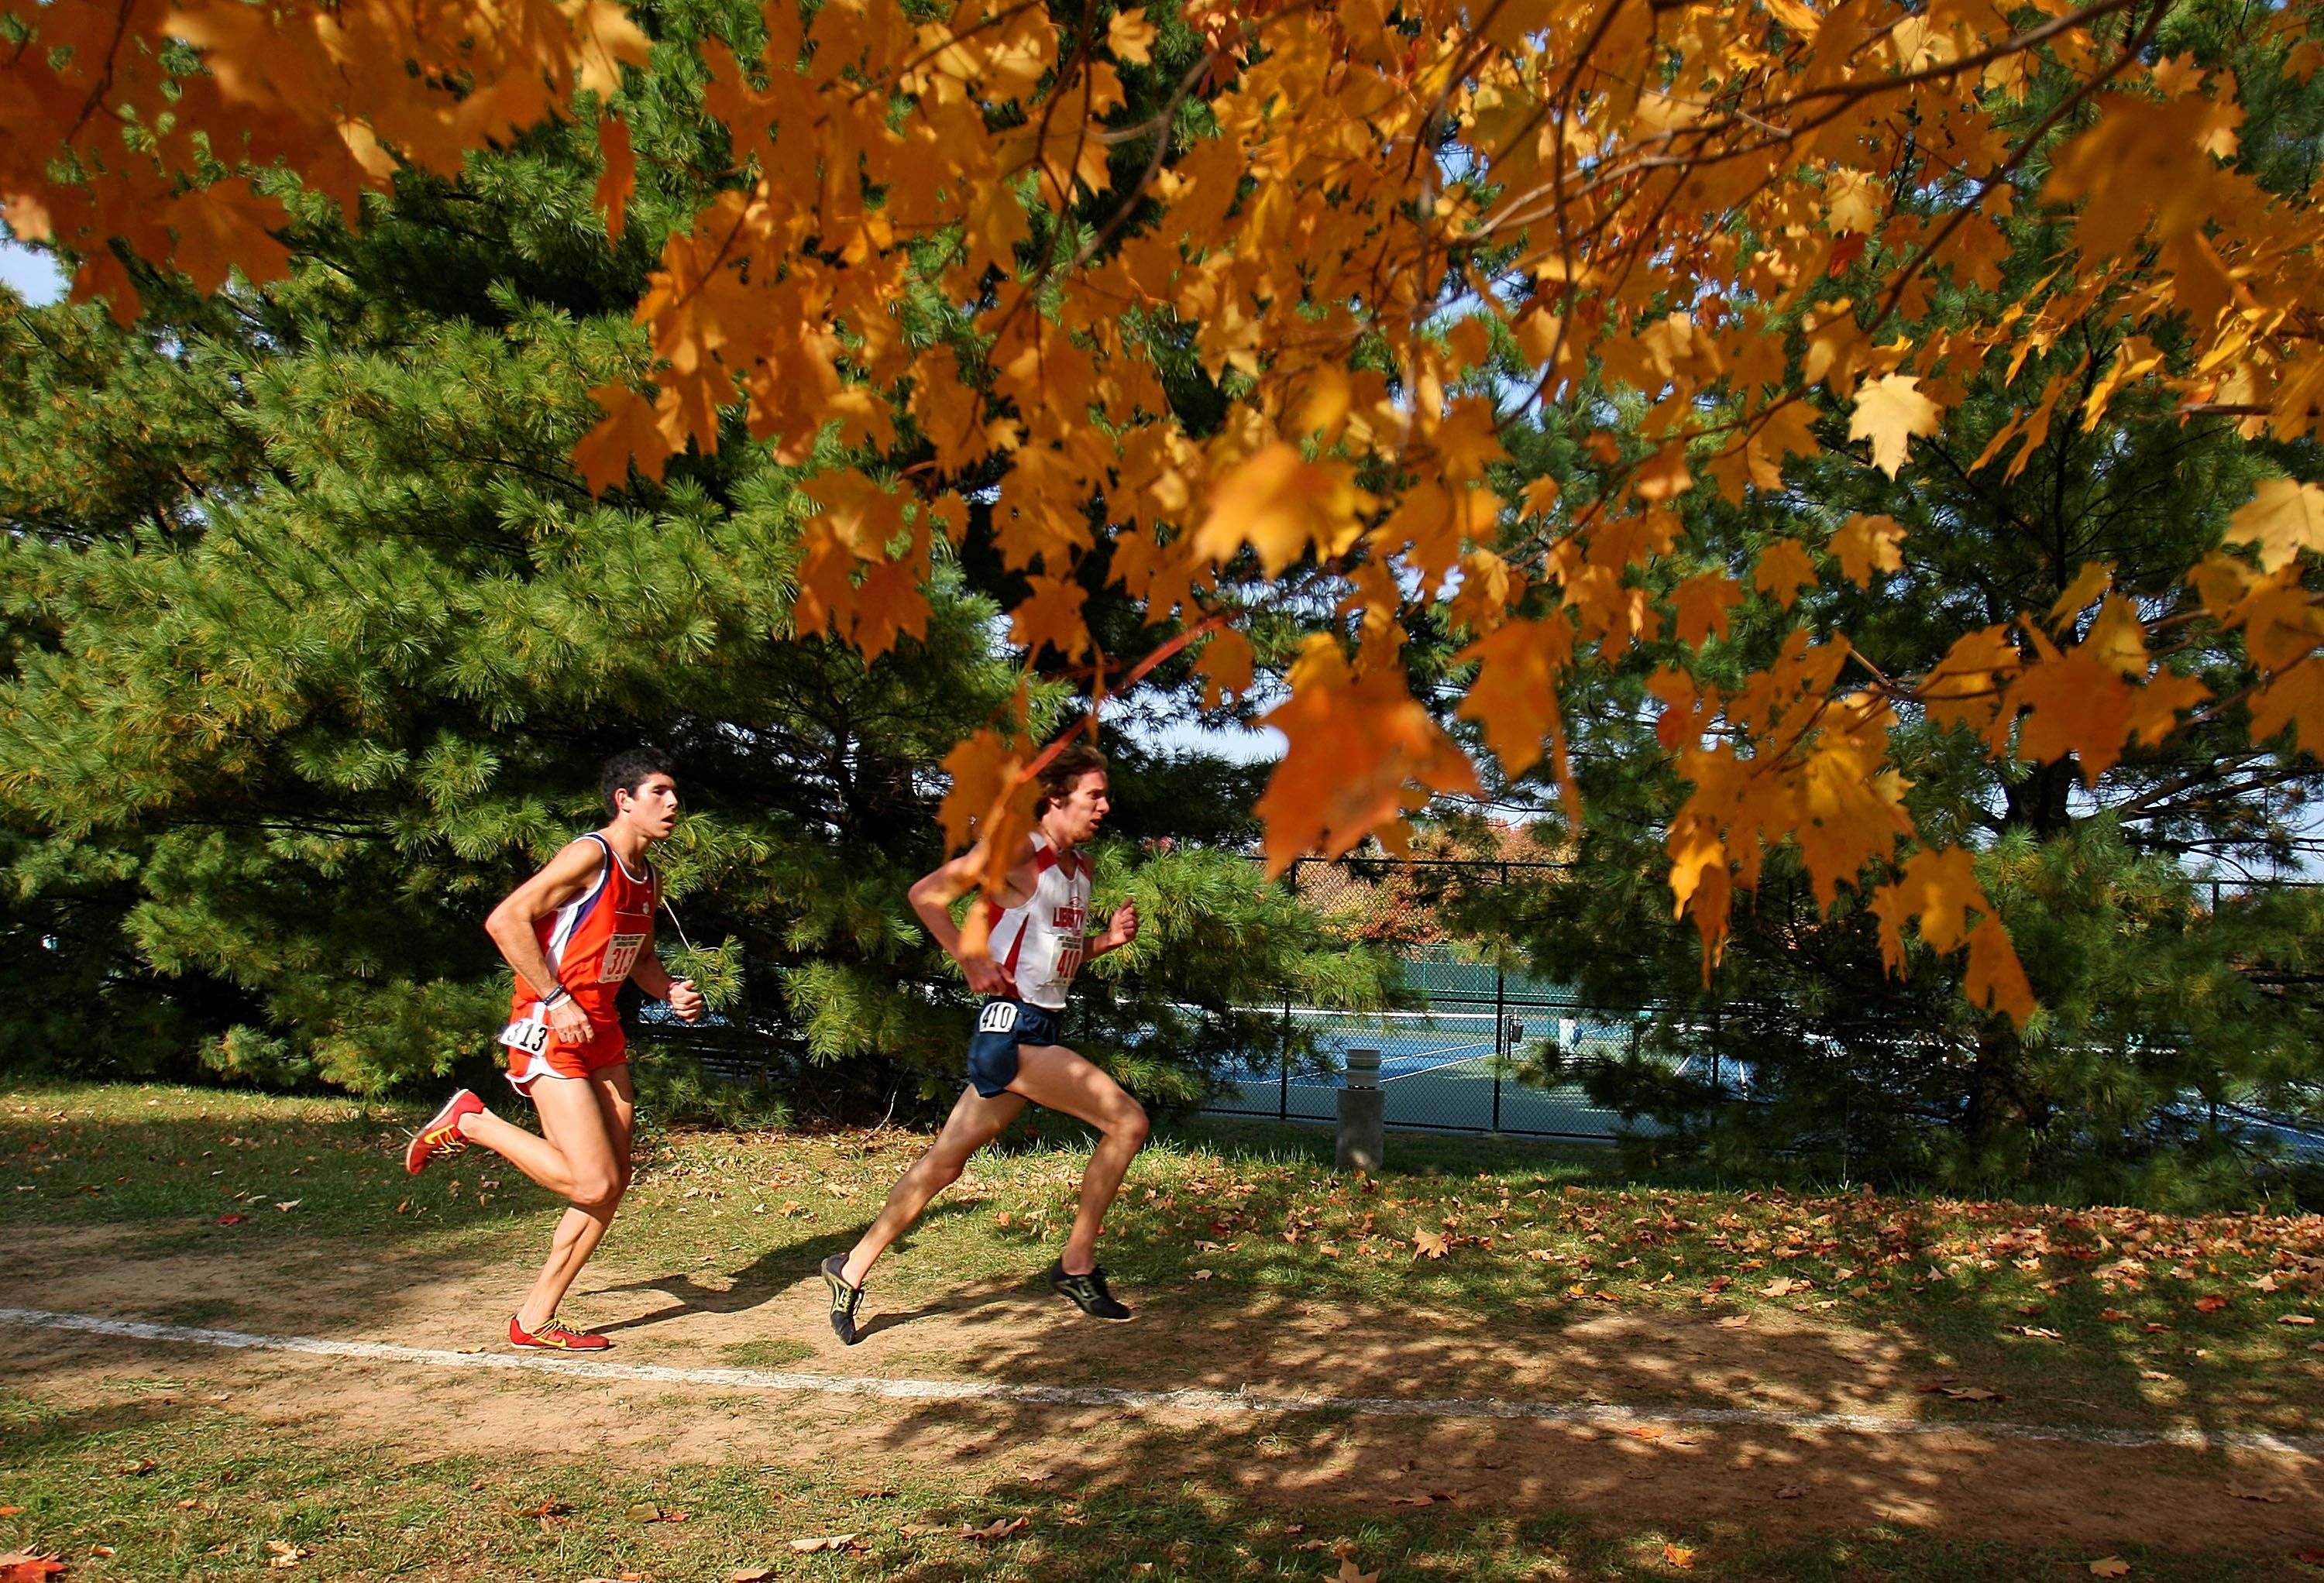 Runners compete during the Men's NCAA Southeast Regional Cross Country meet on November 10, 2007 at E.P. Sawyer State Park in Louisville, Kentucky